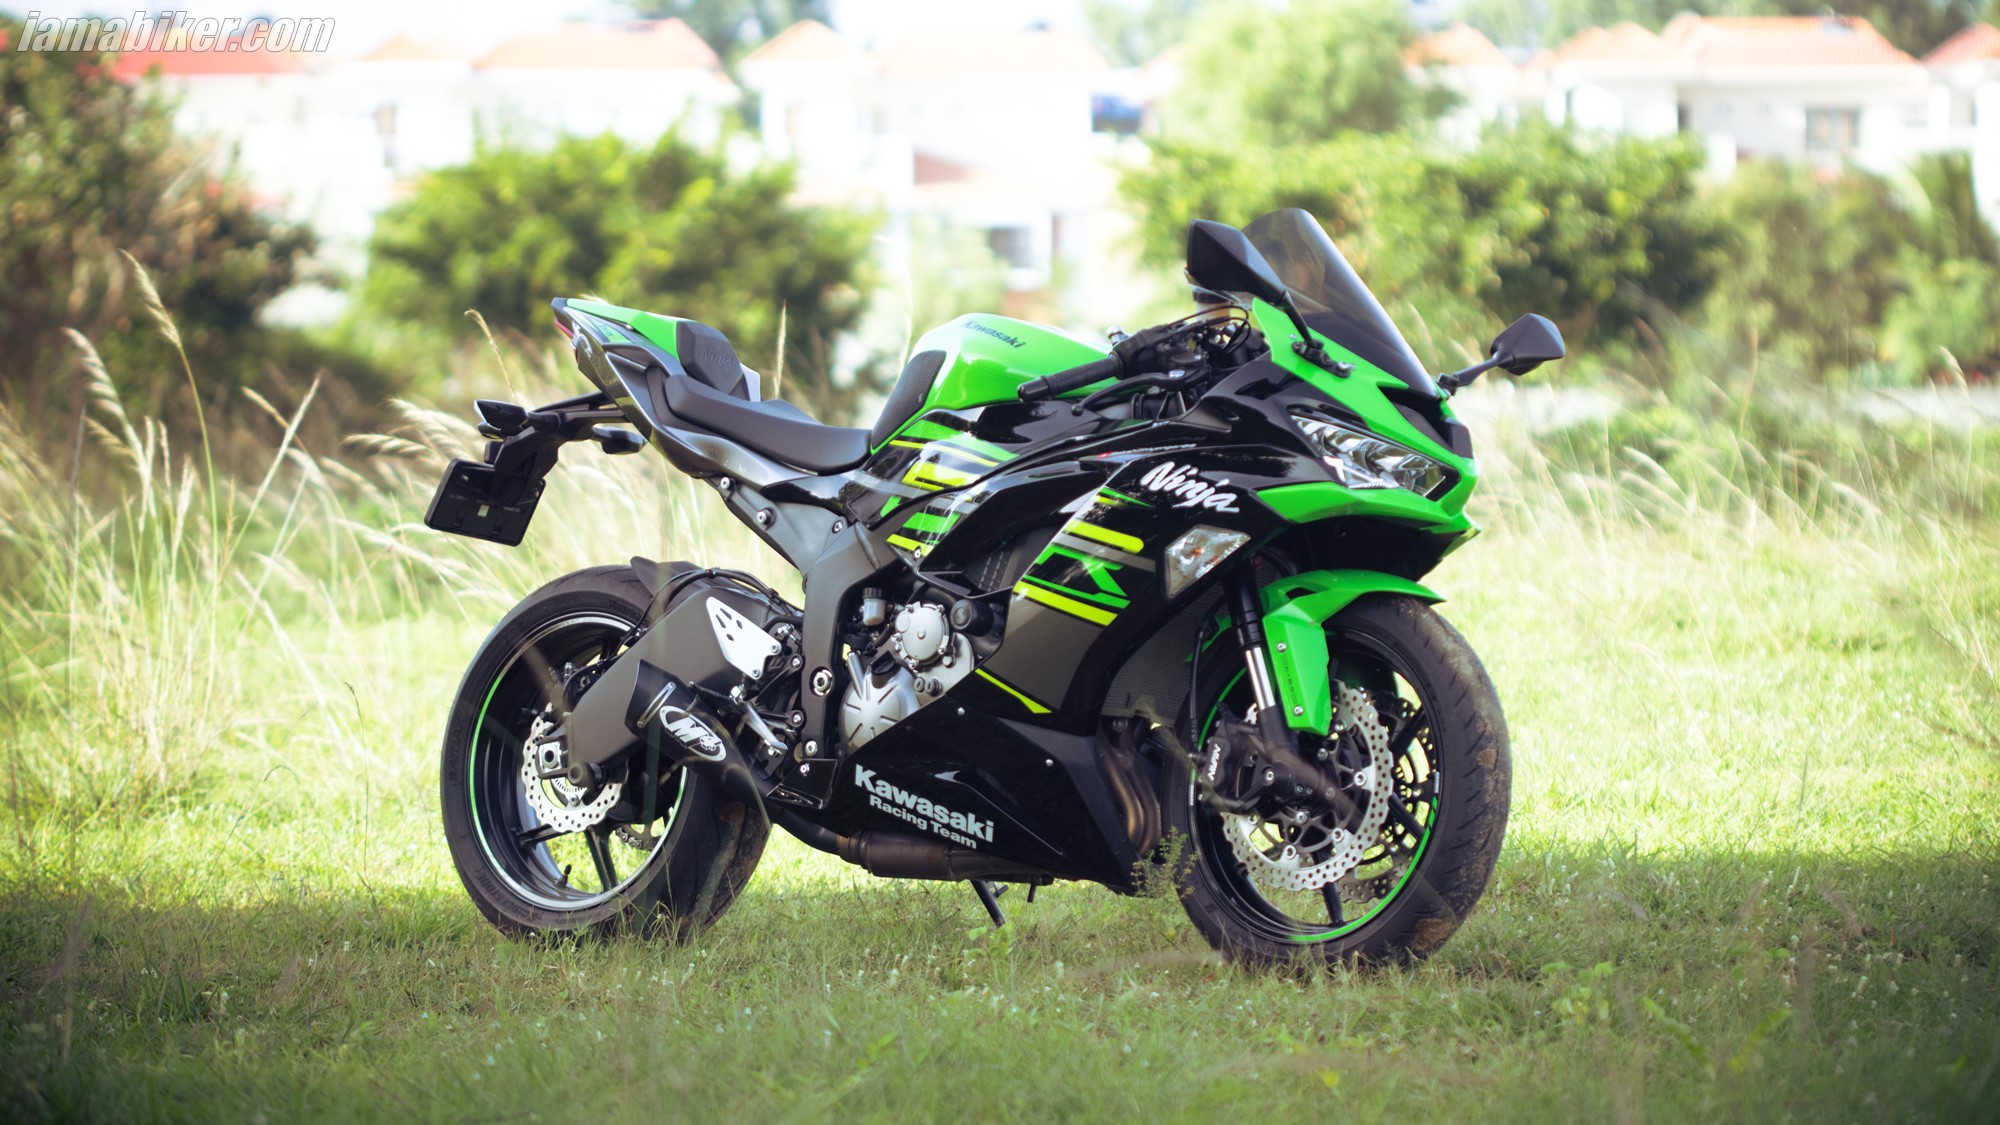 Kawasaki Ninja ZX-6R HD wallpapers